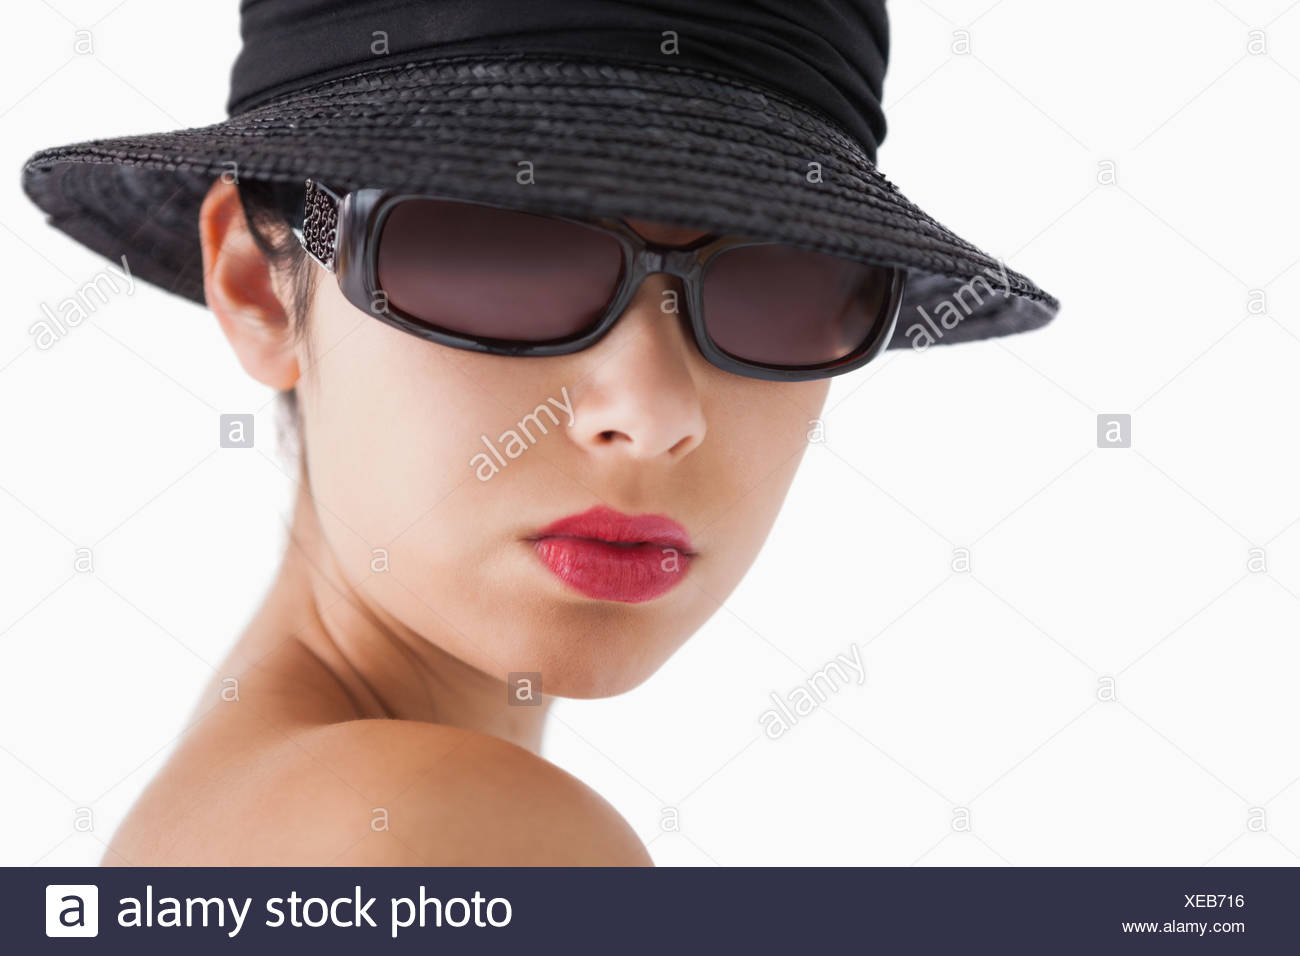 988799915eaa0 Woman wearing sun glasses and hat Stock Photo  284218066 - Alamy